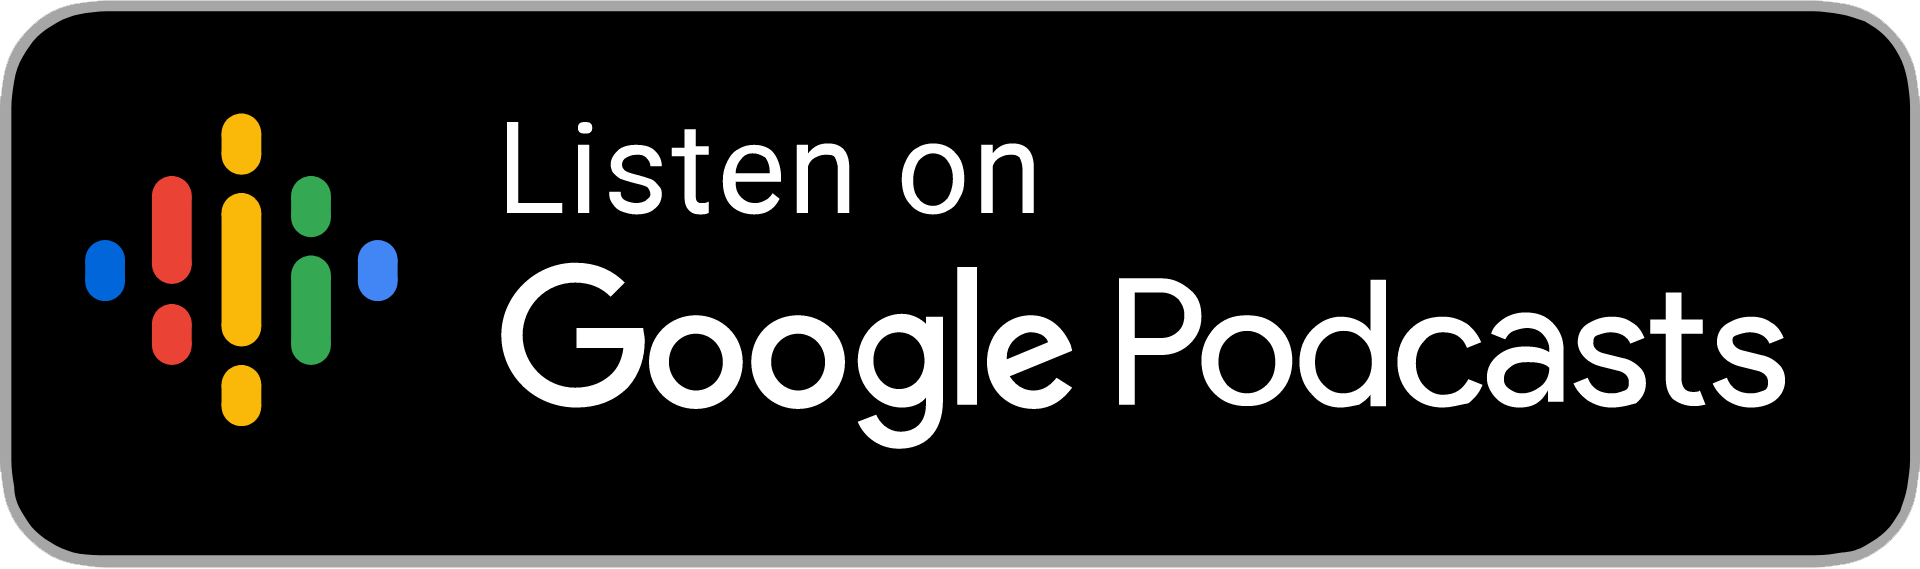 Listen to IMMAGINA|Podcast on Google Podcast